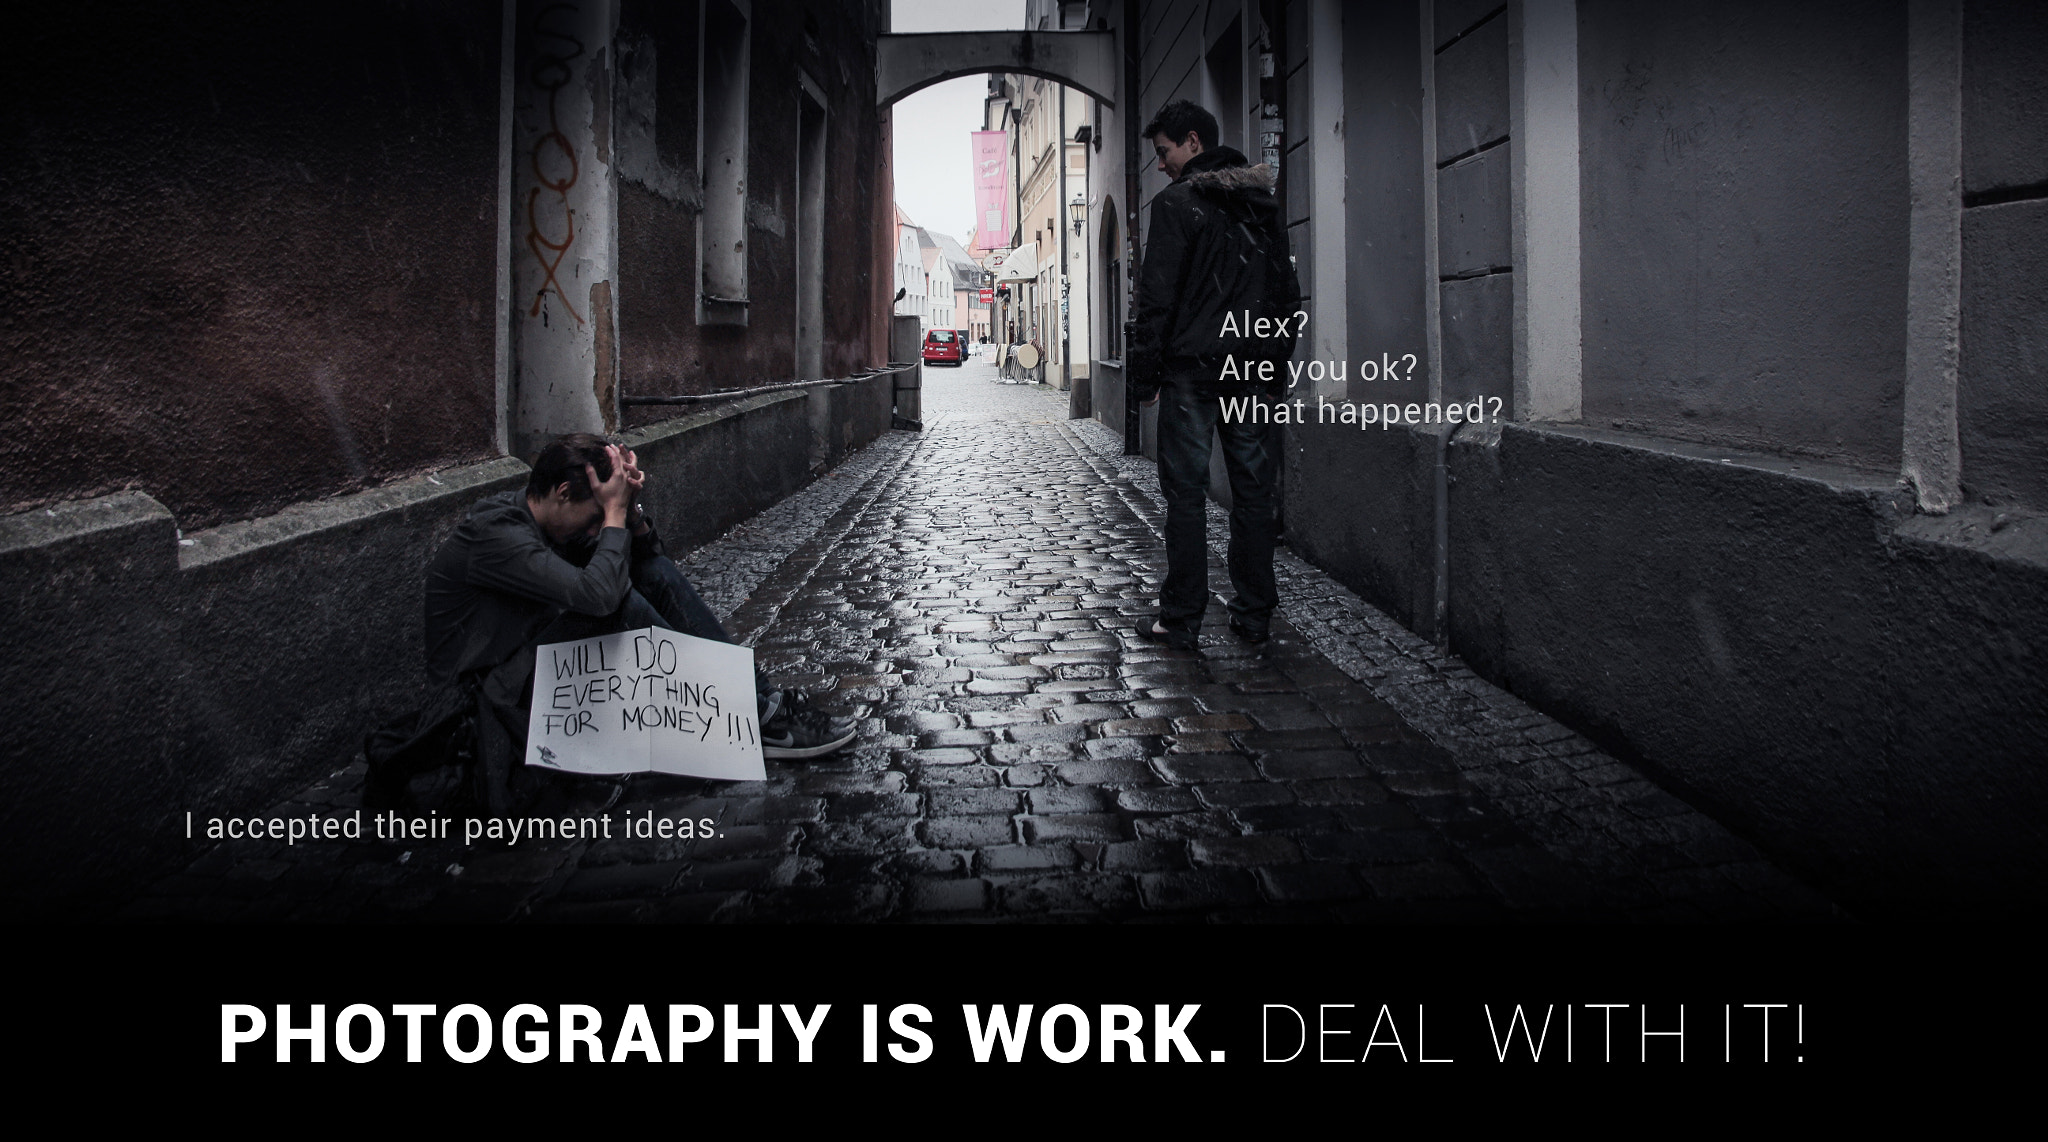 Photograph DEAL WITH IT! by Alex Viebig on 500px